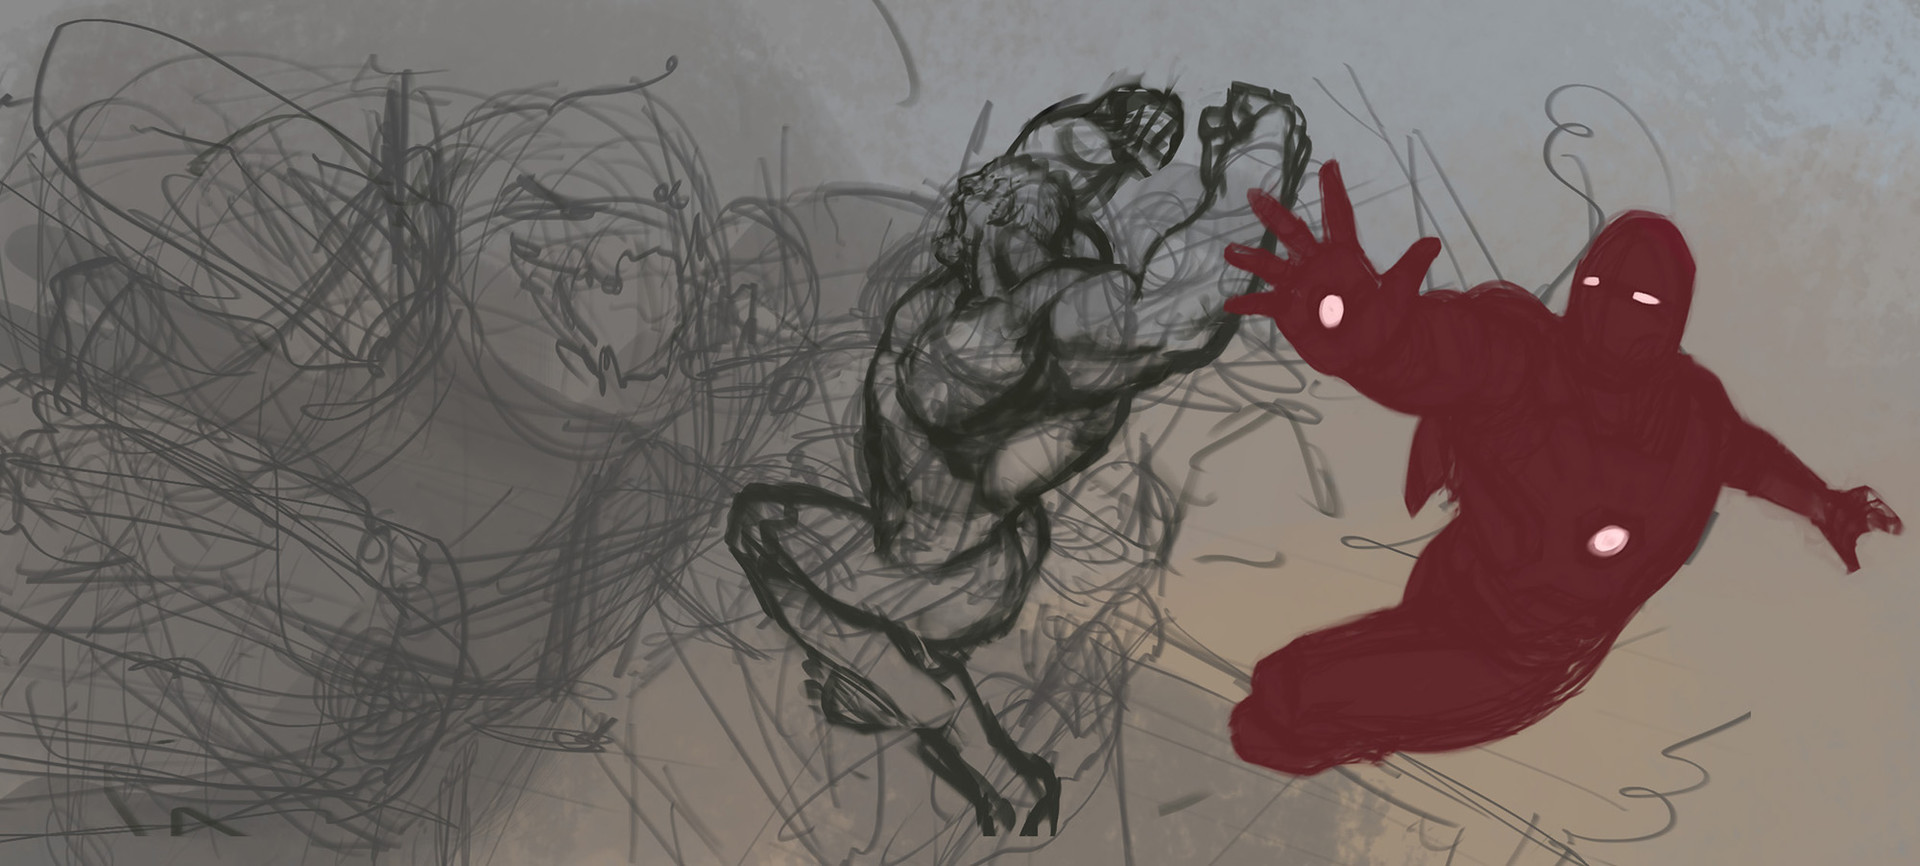 Initial scribbly sketch to lay out the composition.